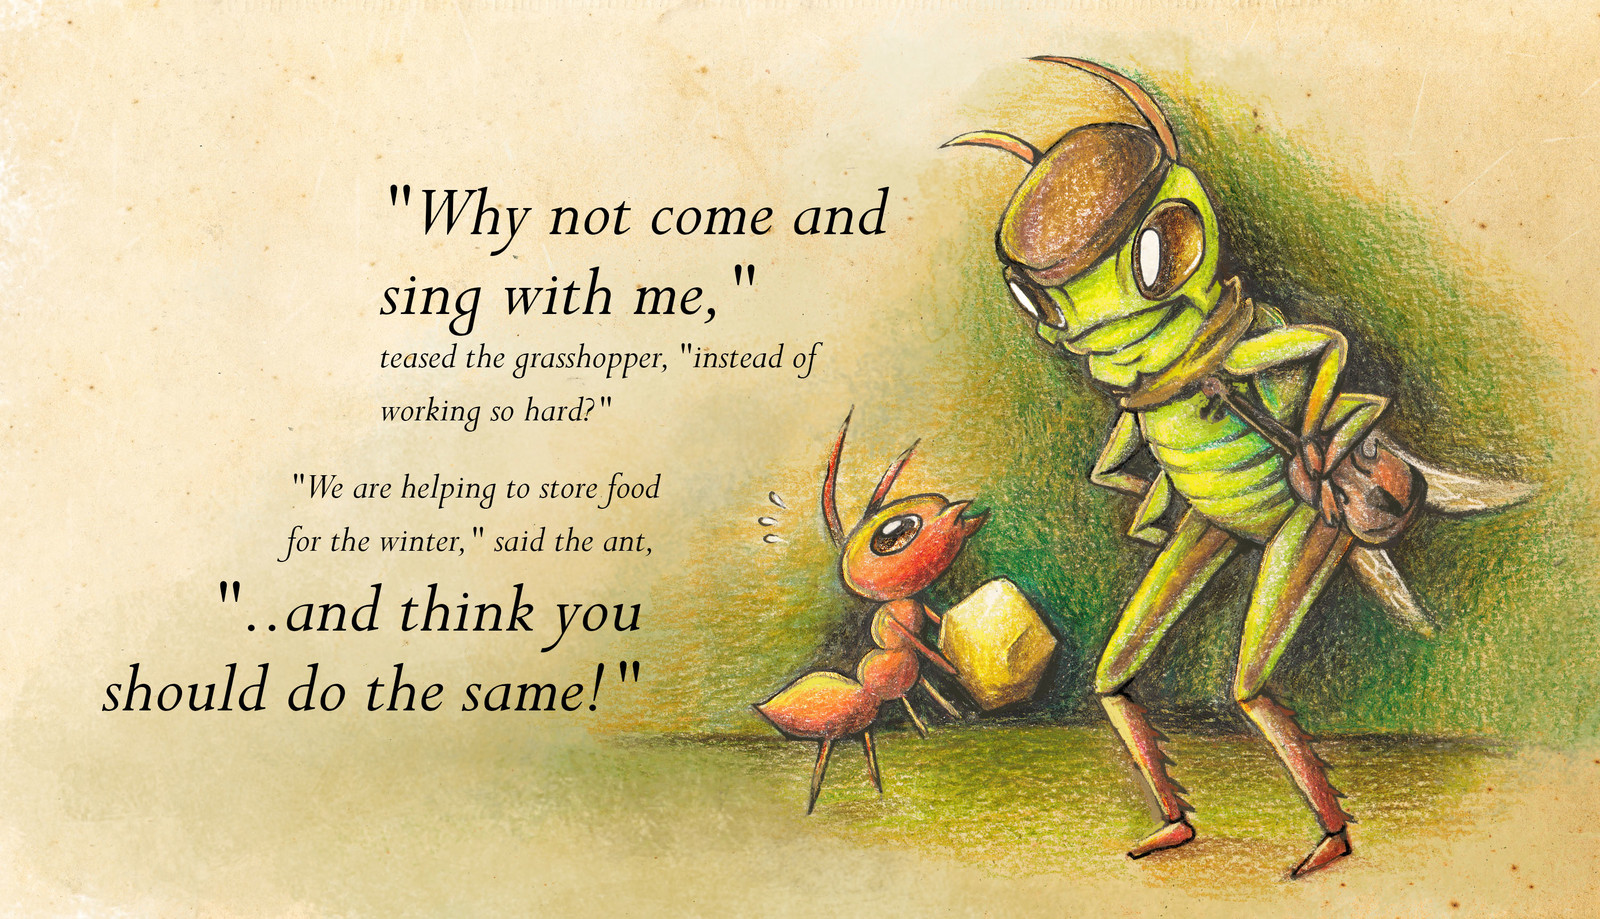 """""""Winter is far away and it is a glorious day to play,"""" sang the grasshopper.  But the ants went on their way and continued their hard work."""